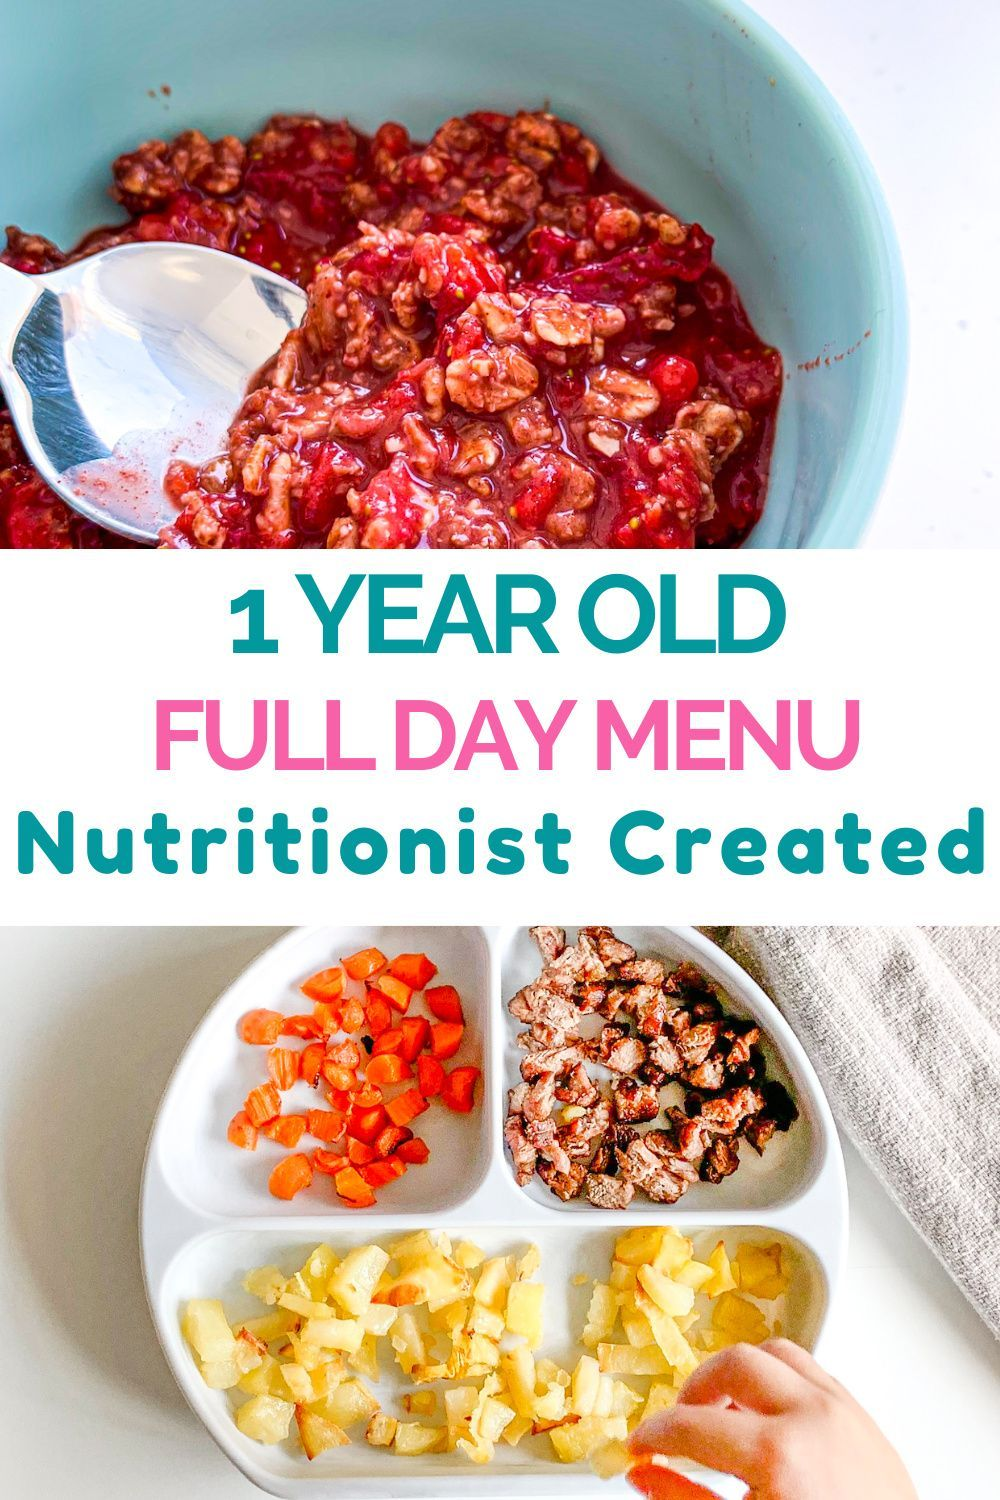 1 Year Old Meal Plan - Nutritionist Approved   Creative ...